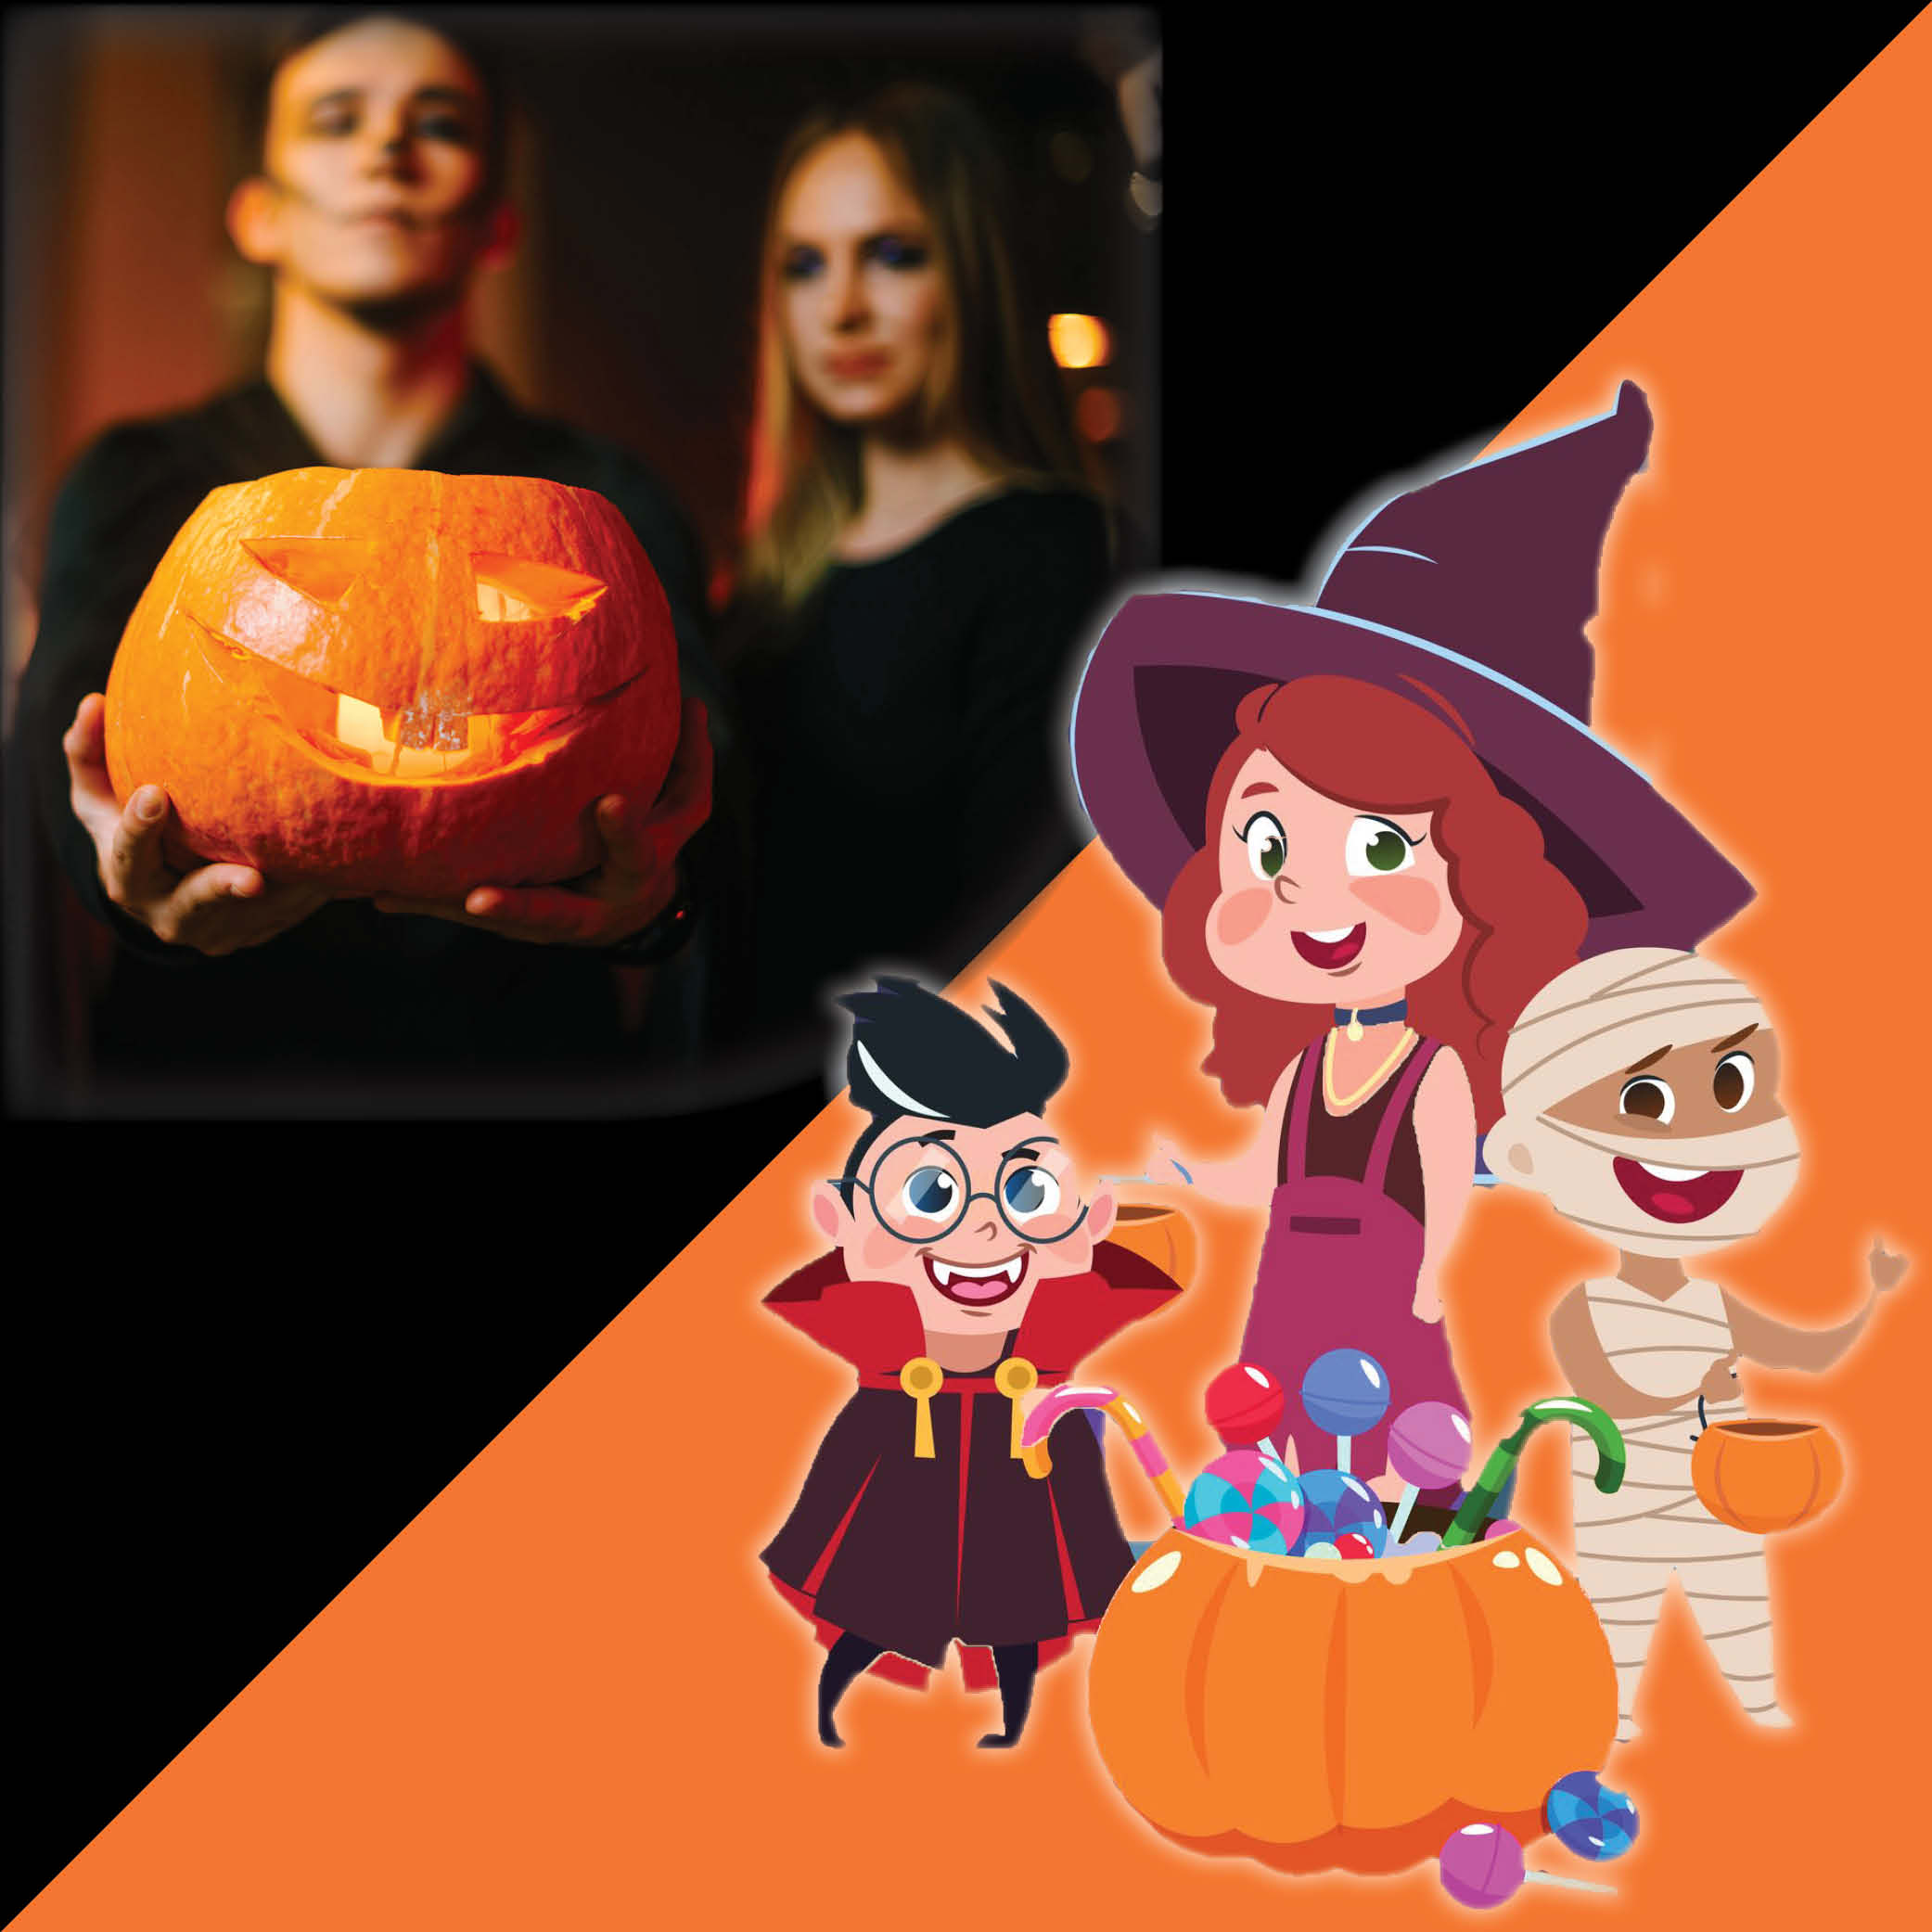 Show us your costume for a chance to win!